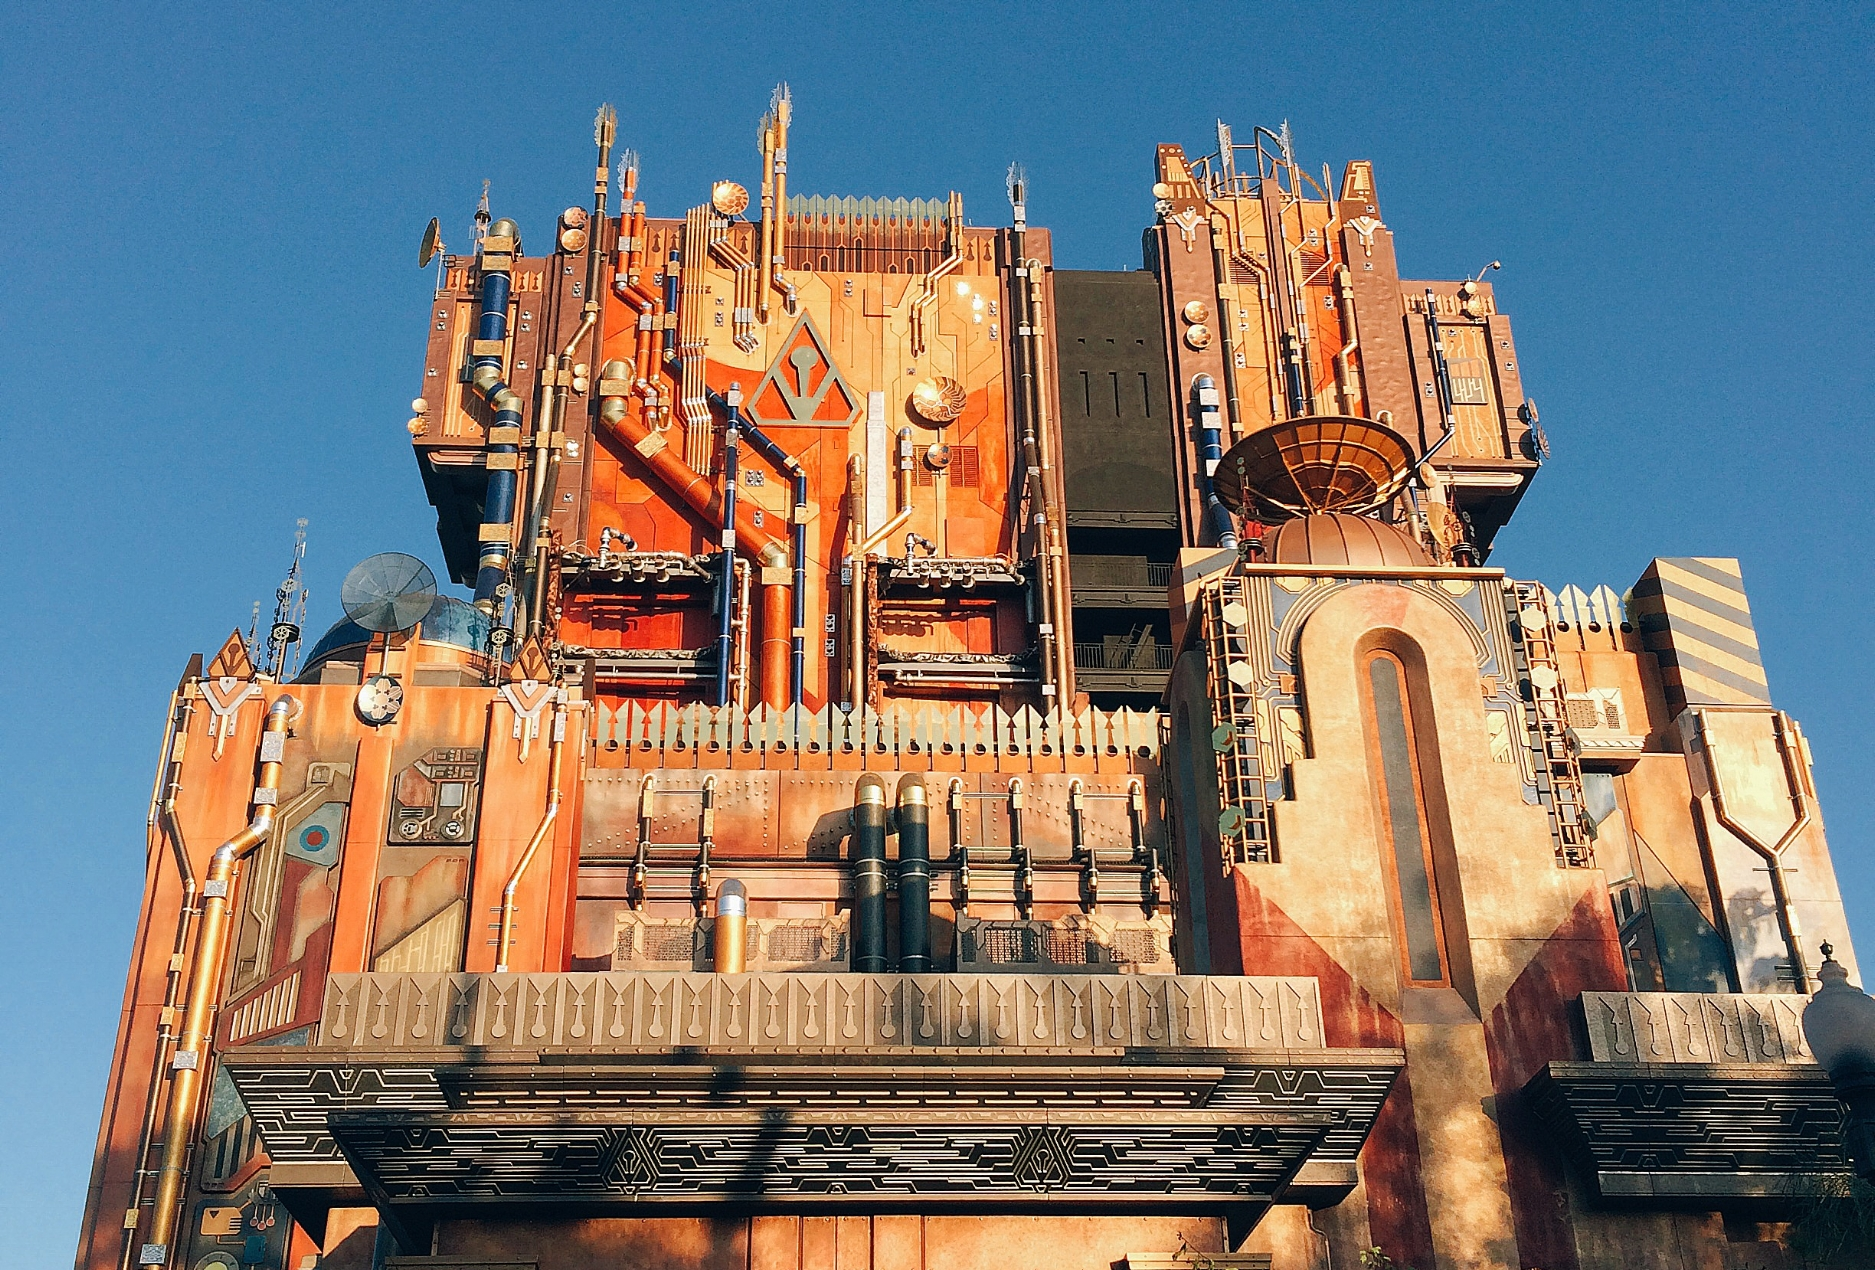 tower of terror guardians of the galaxy mission breakout